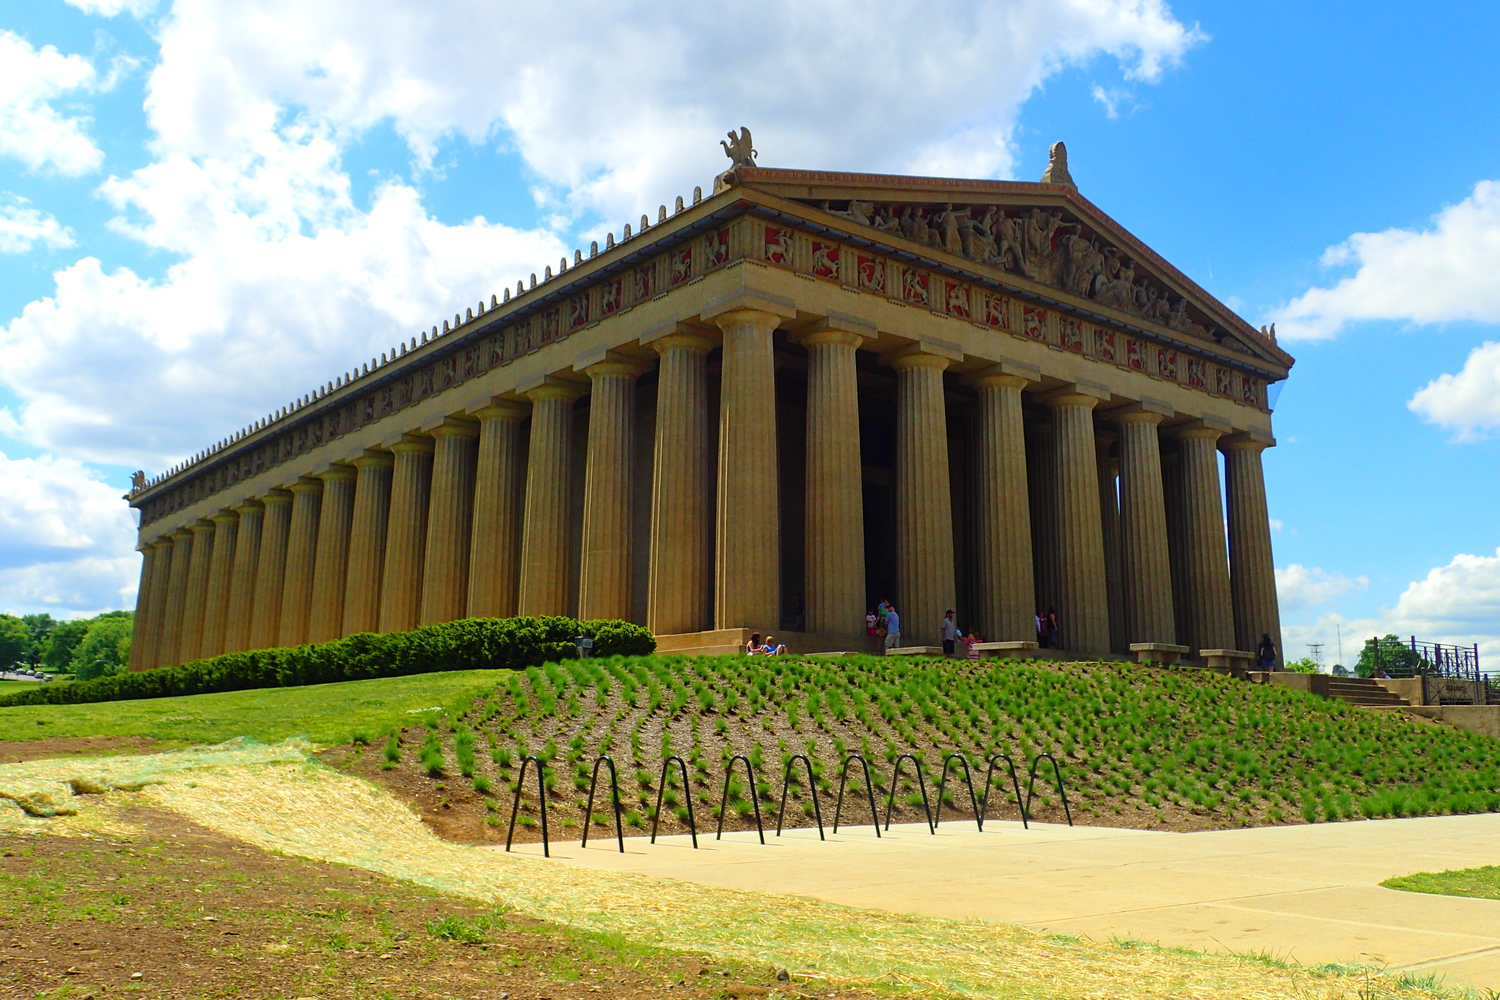 The Parthenon A Slice Of Ancient Greece In Nashville Tennessee